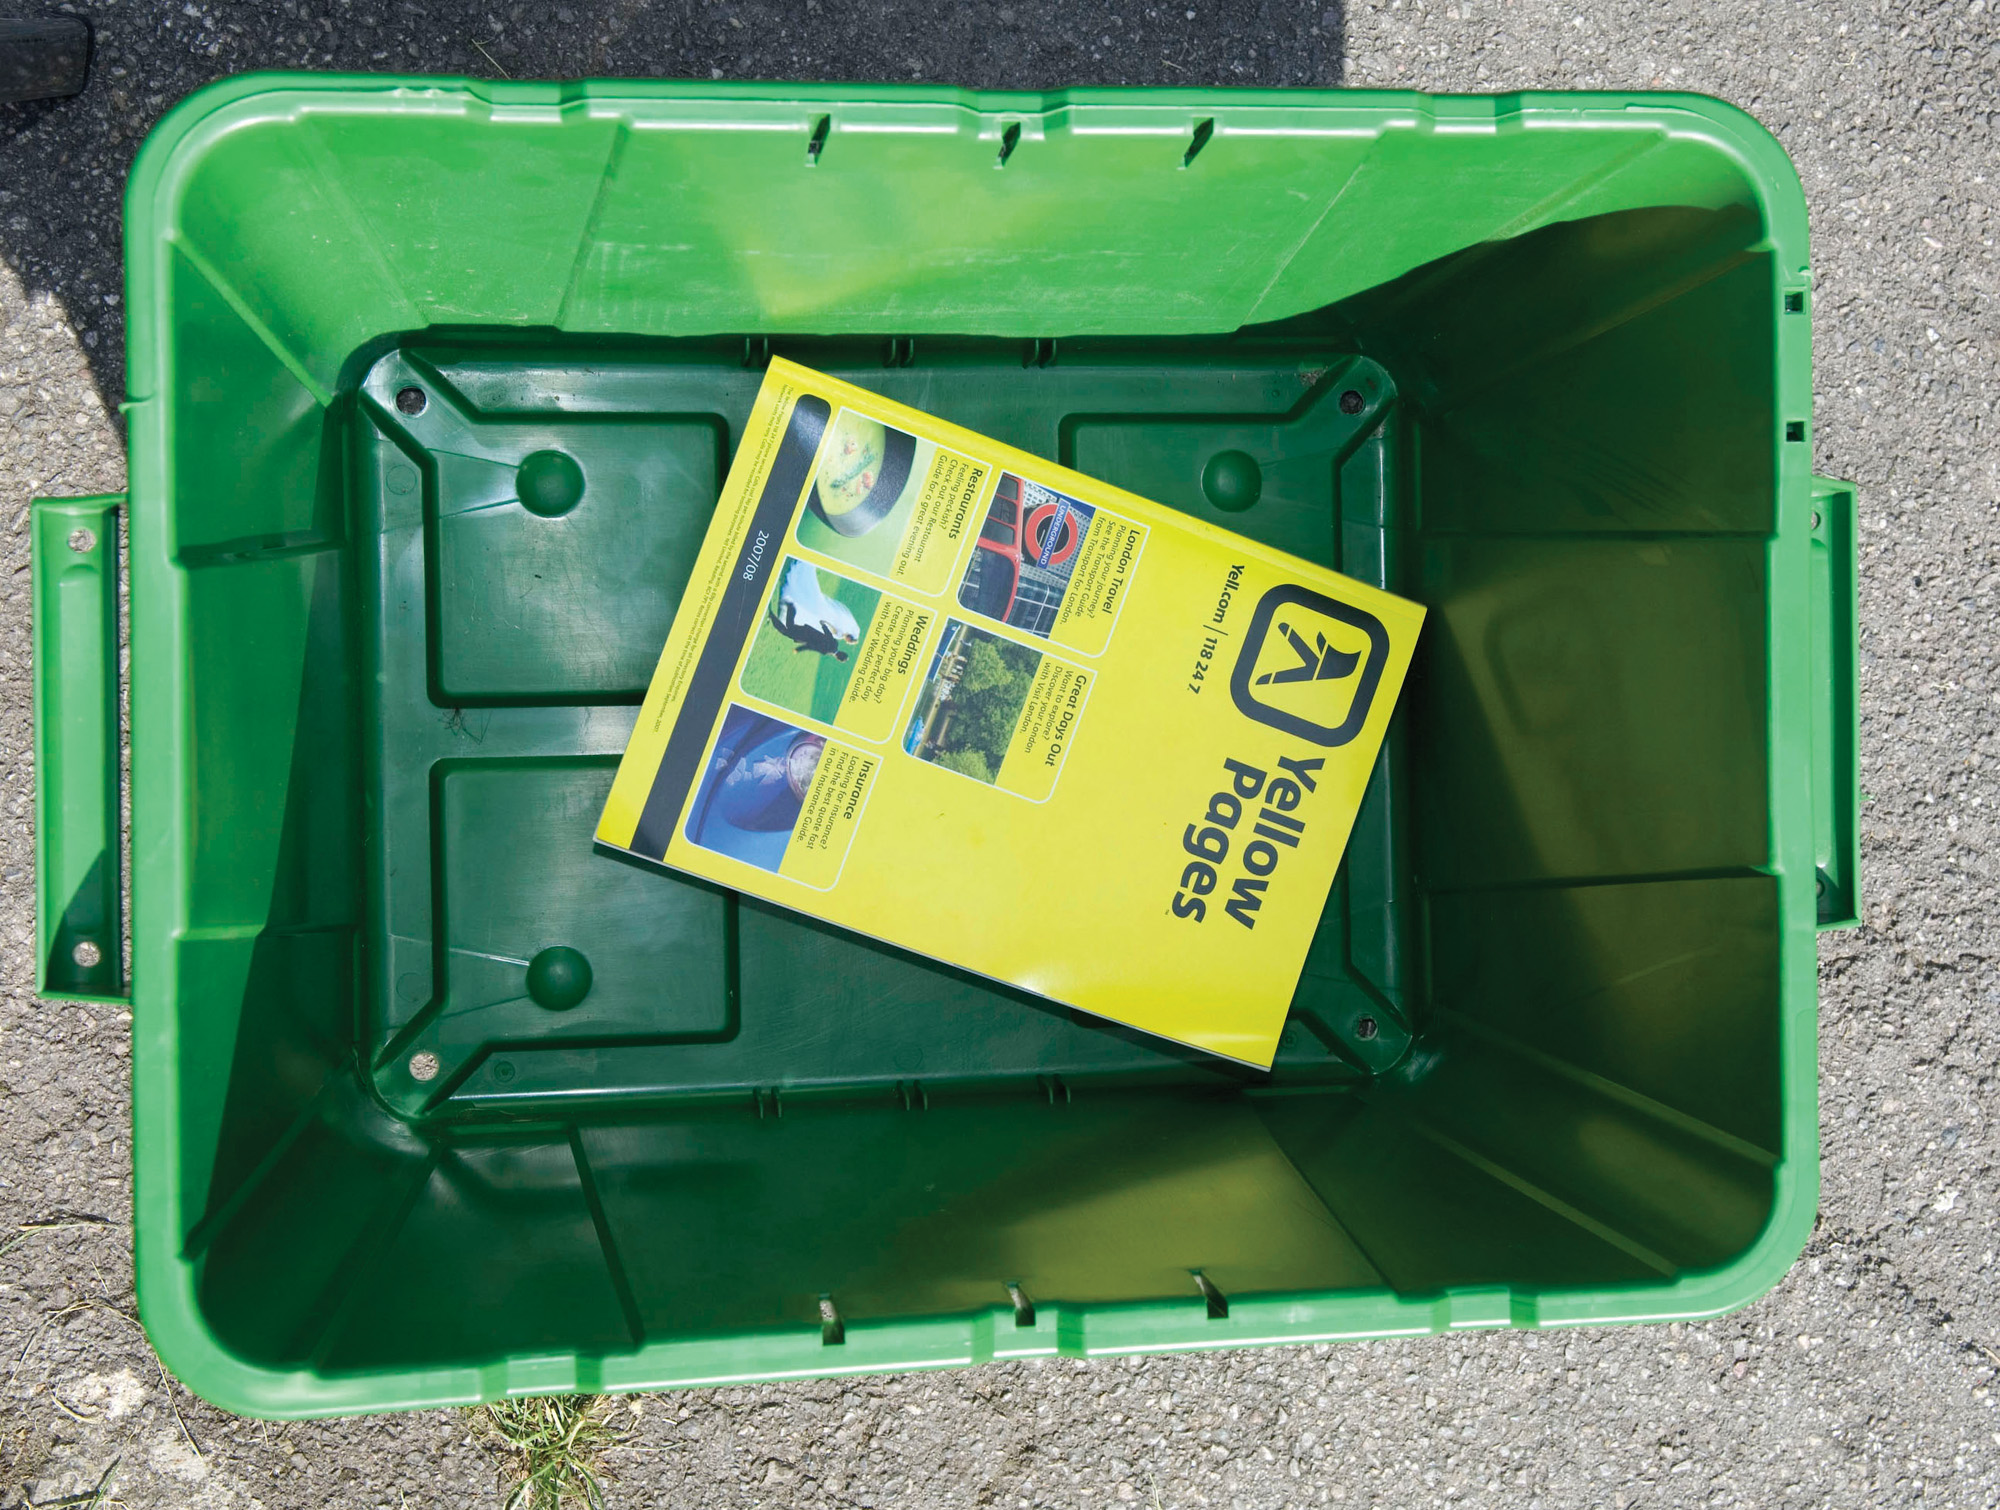 yellow pages recycling bin.jpg